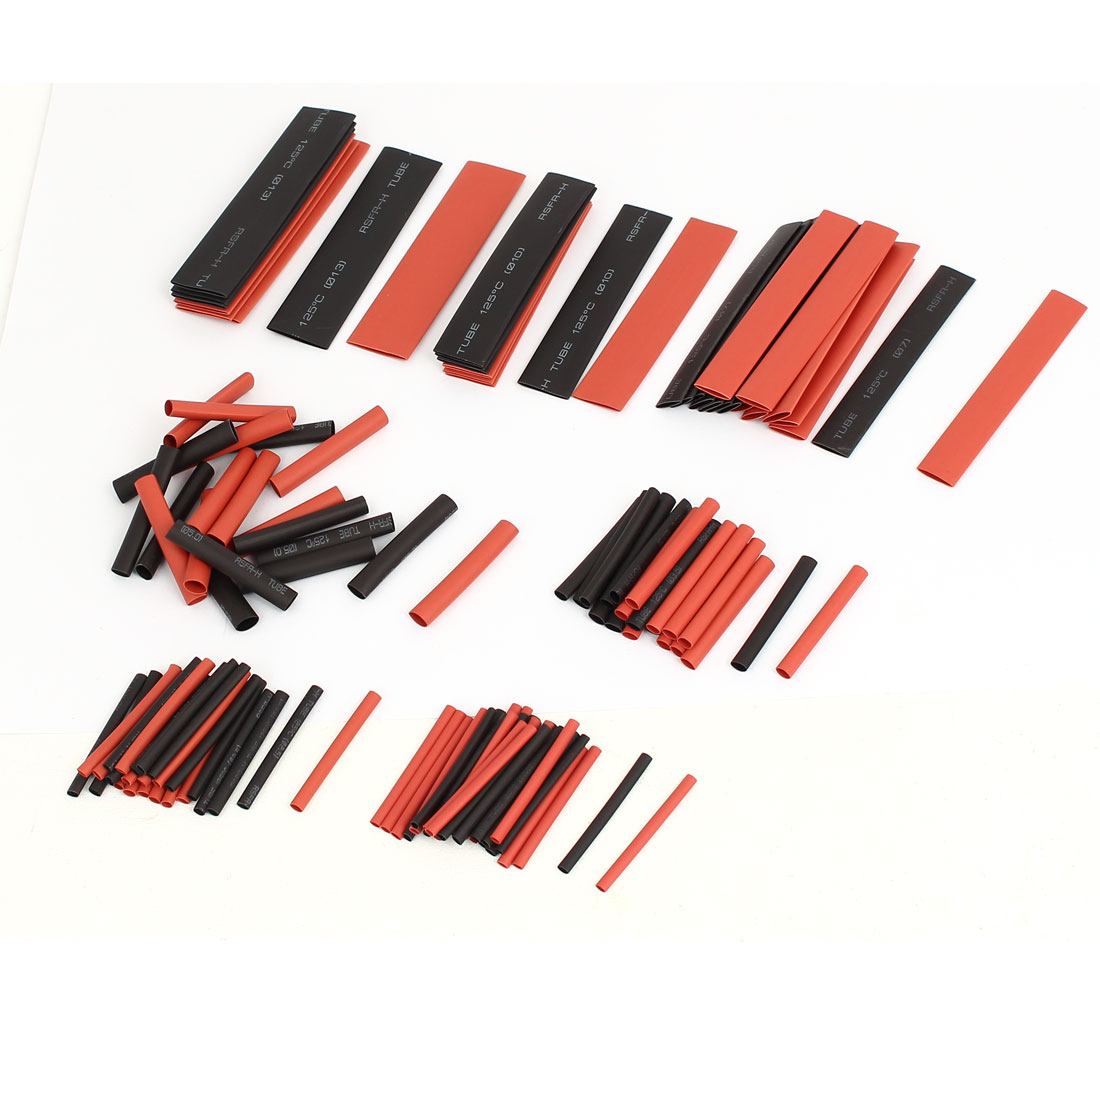 Insulated Heat Shrink Tube Sleeving Wrap Wire Kit 7 Sizes Black Red 127pcs